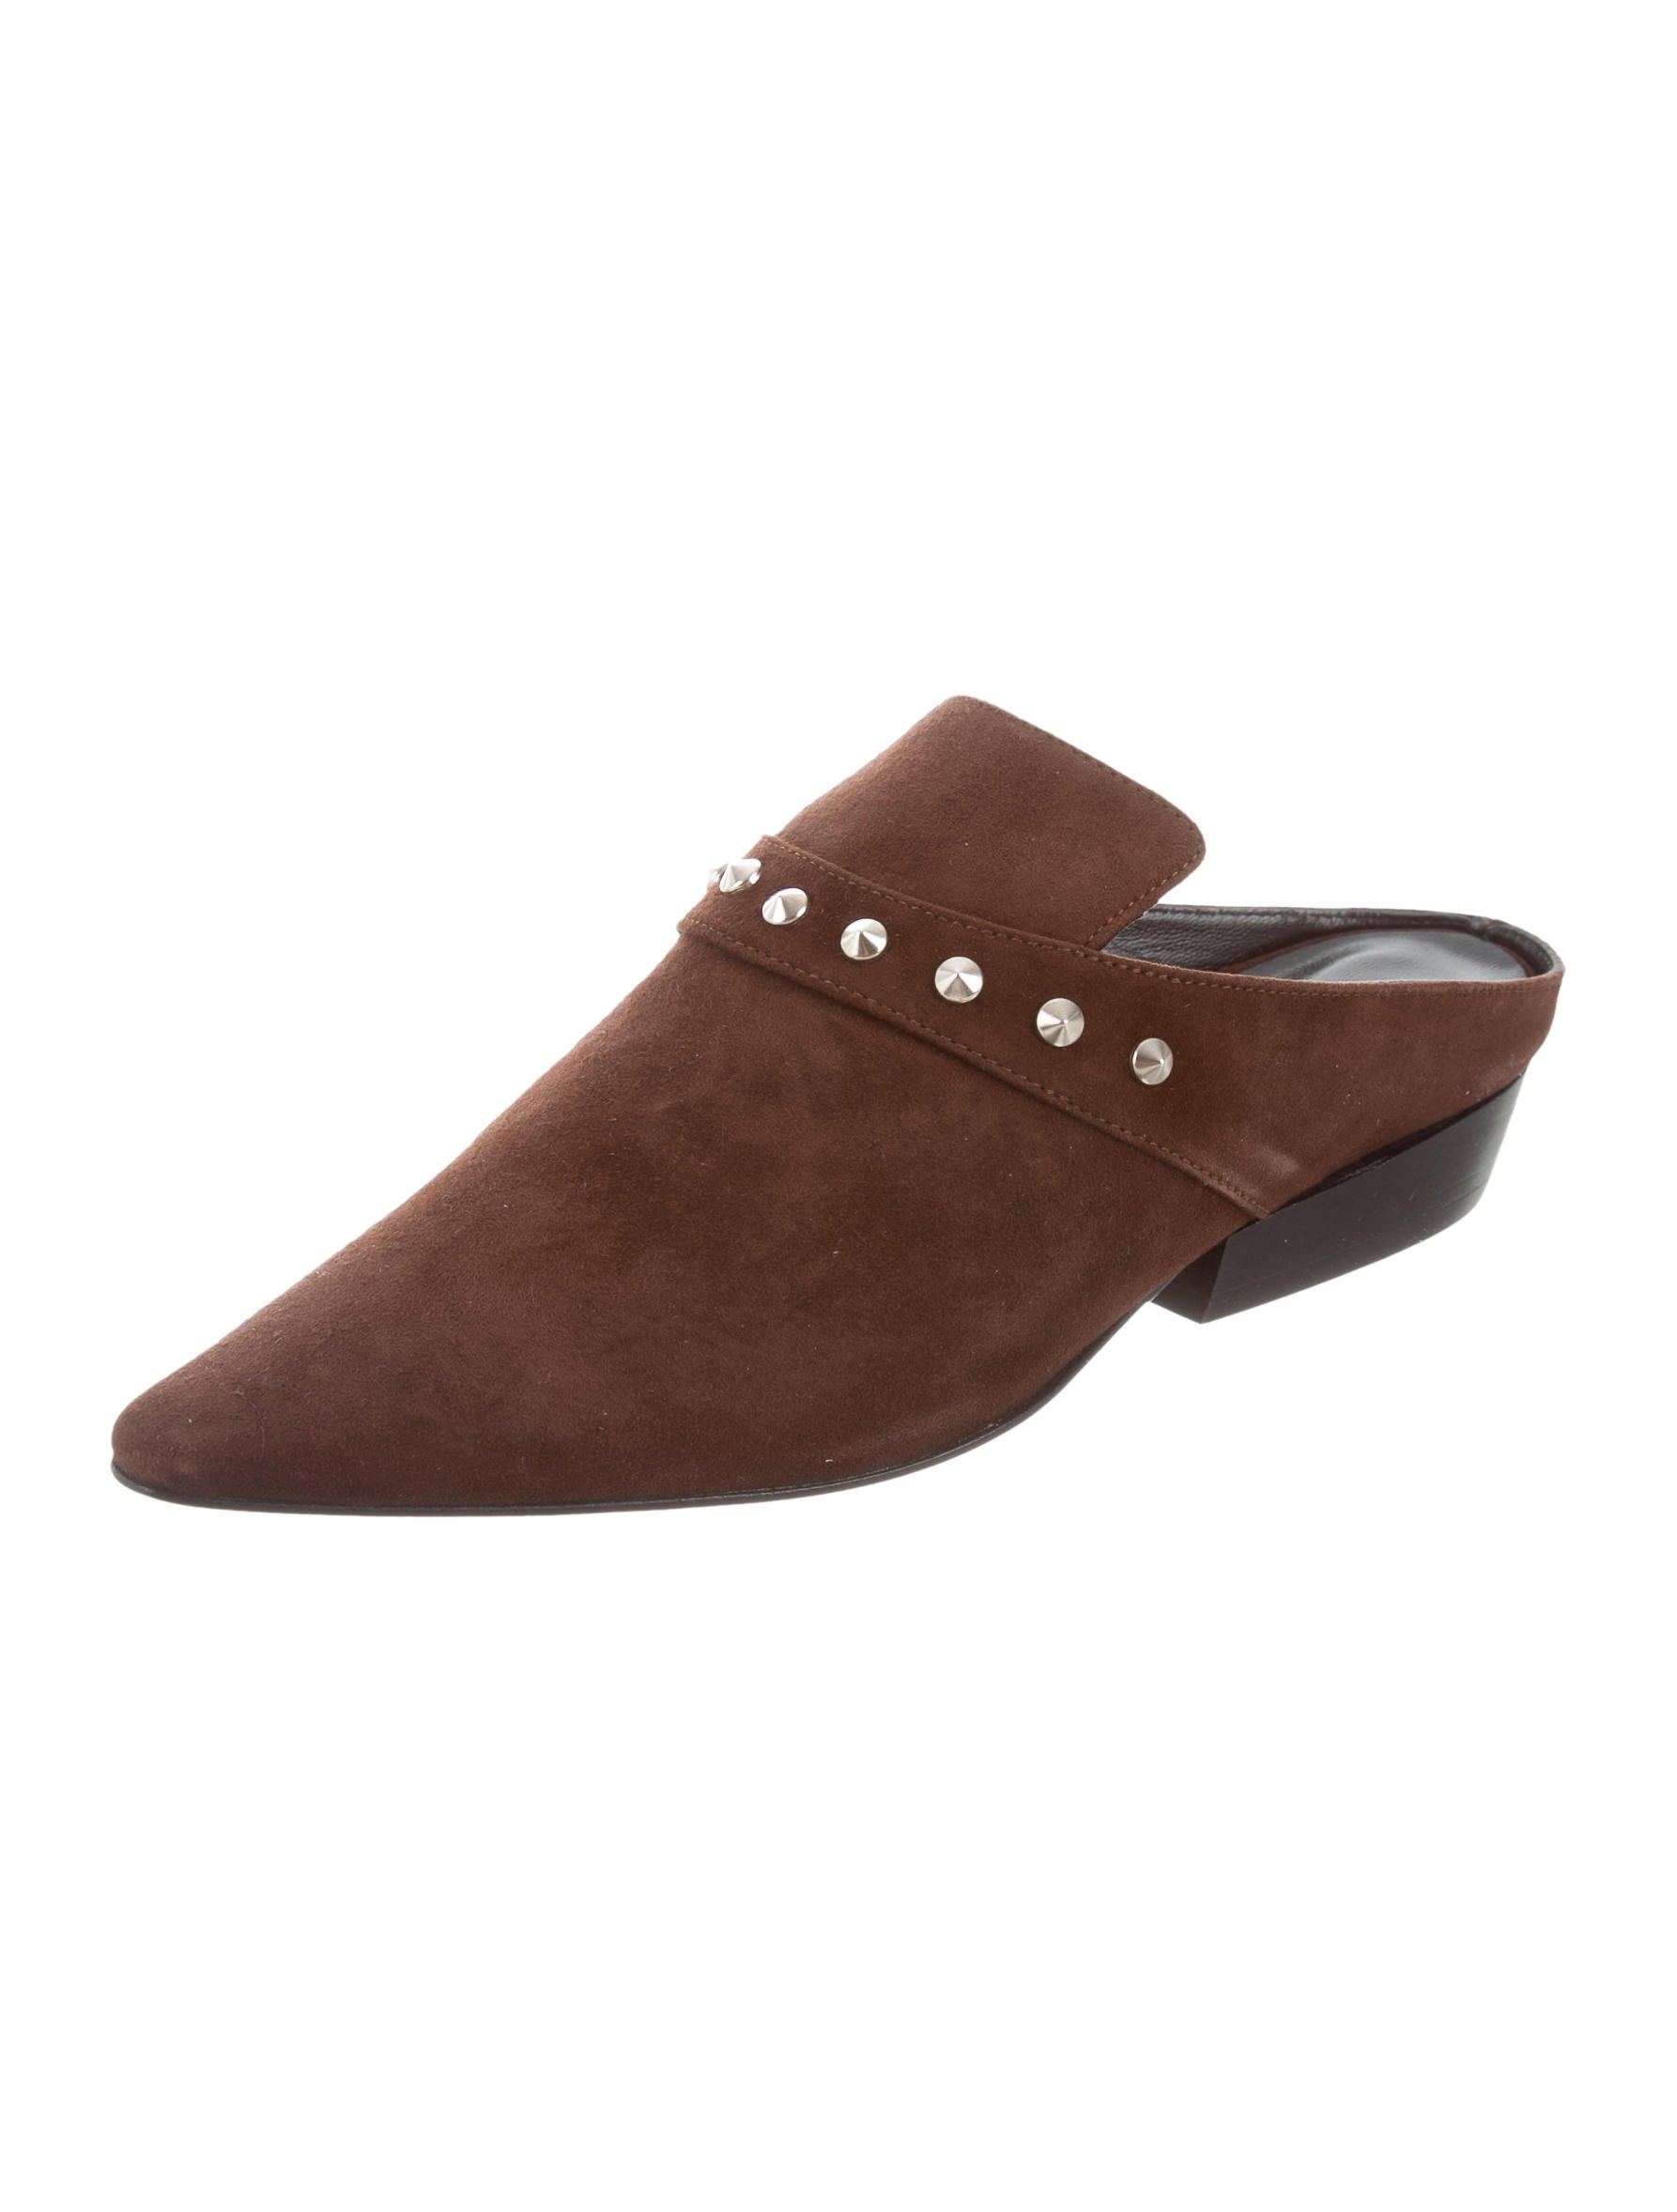 Dorateymur Suede Spiked Mules w/ Tags online cheap authentic for sale under $60 ZMLob